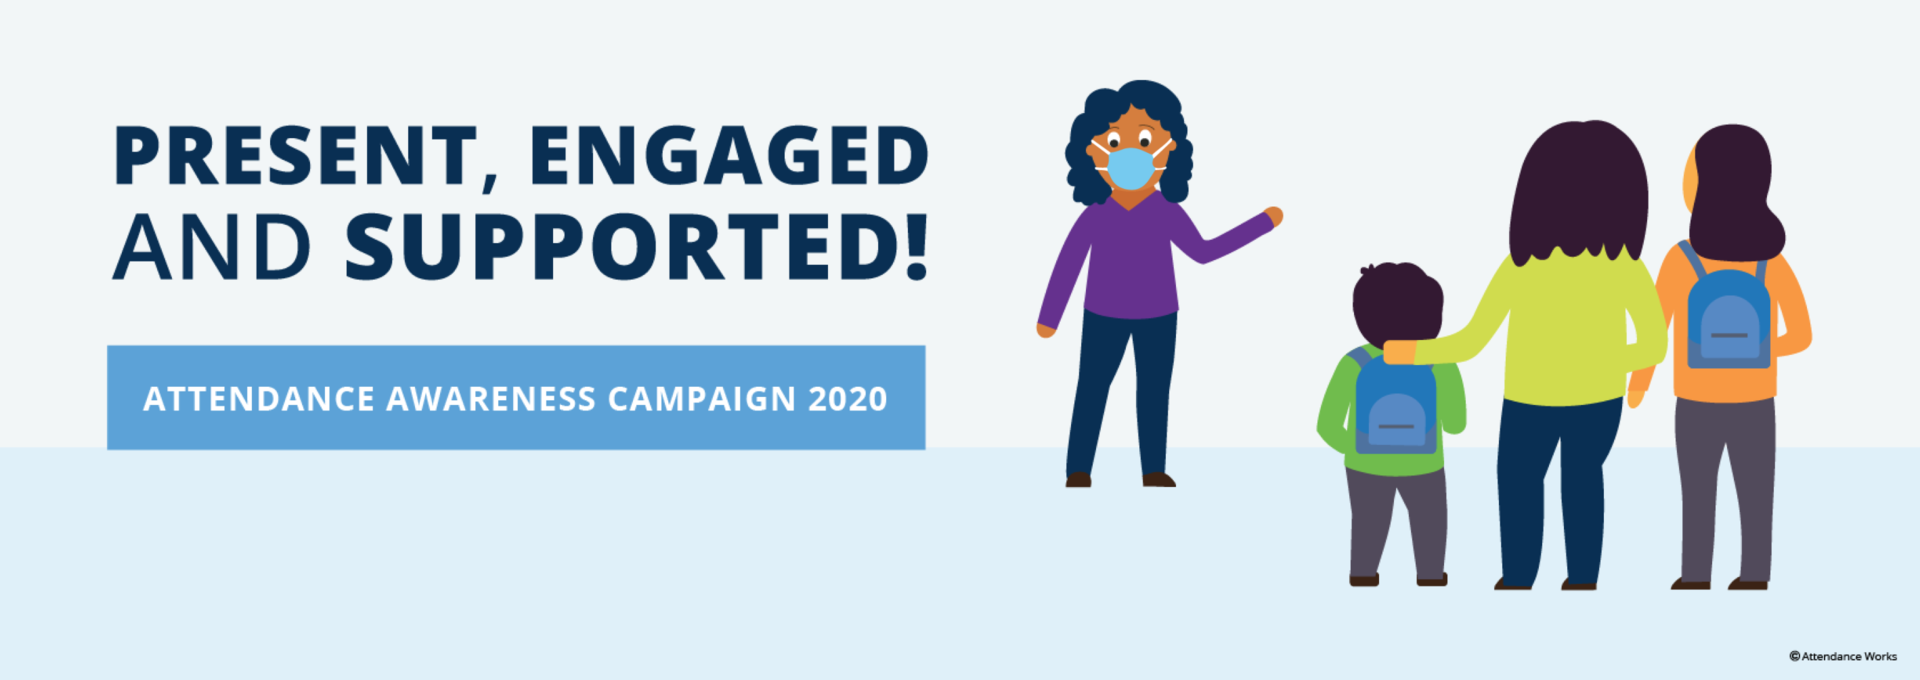 2020 Attendance Awareness Campaign: Present, Engaged and Supported